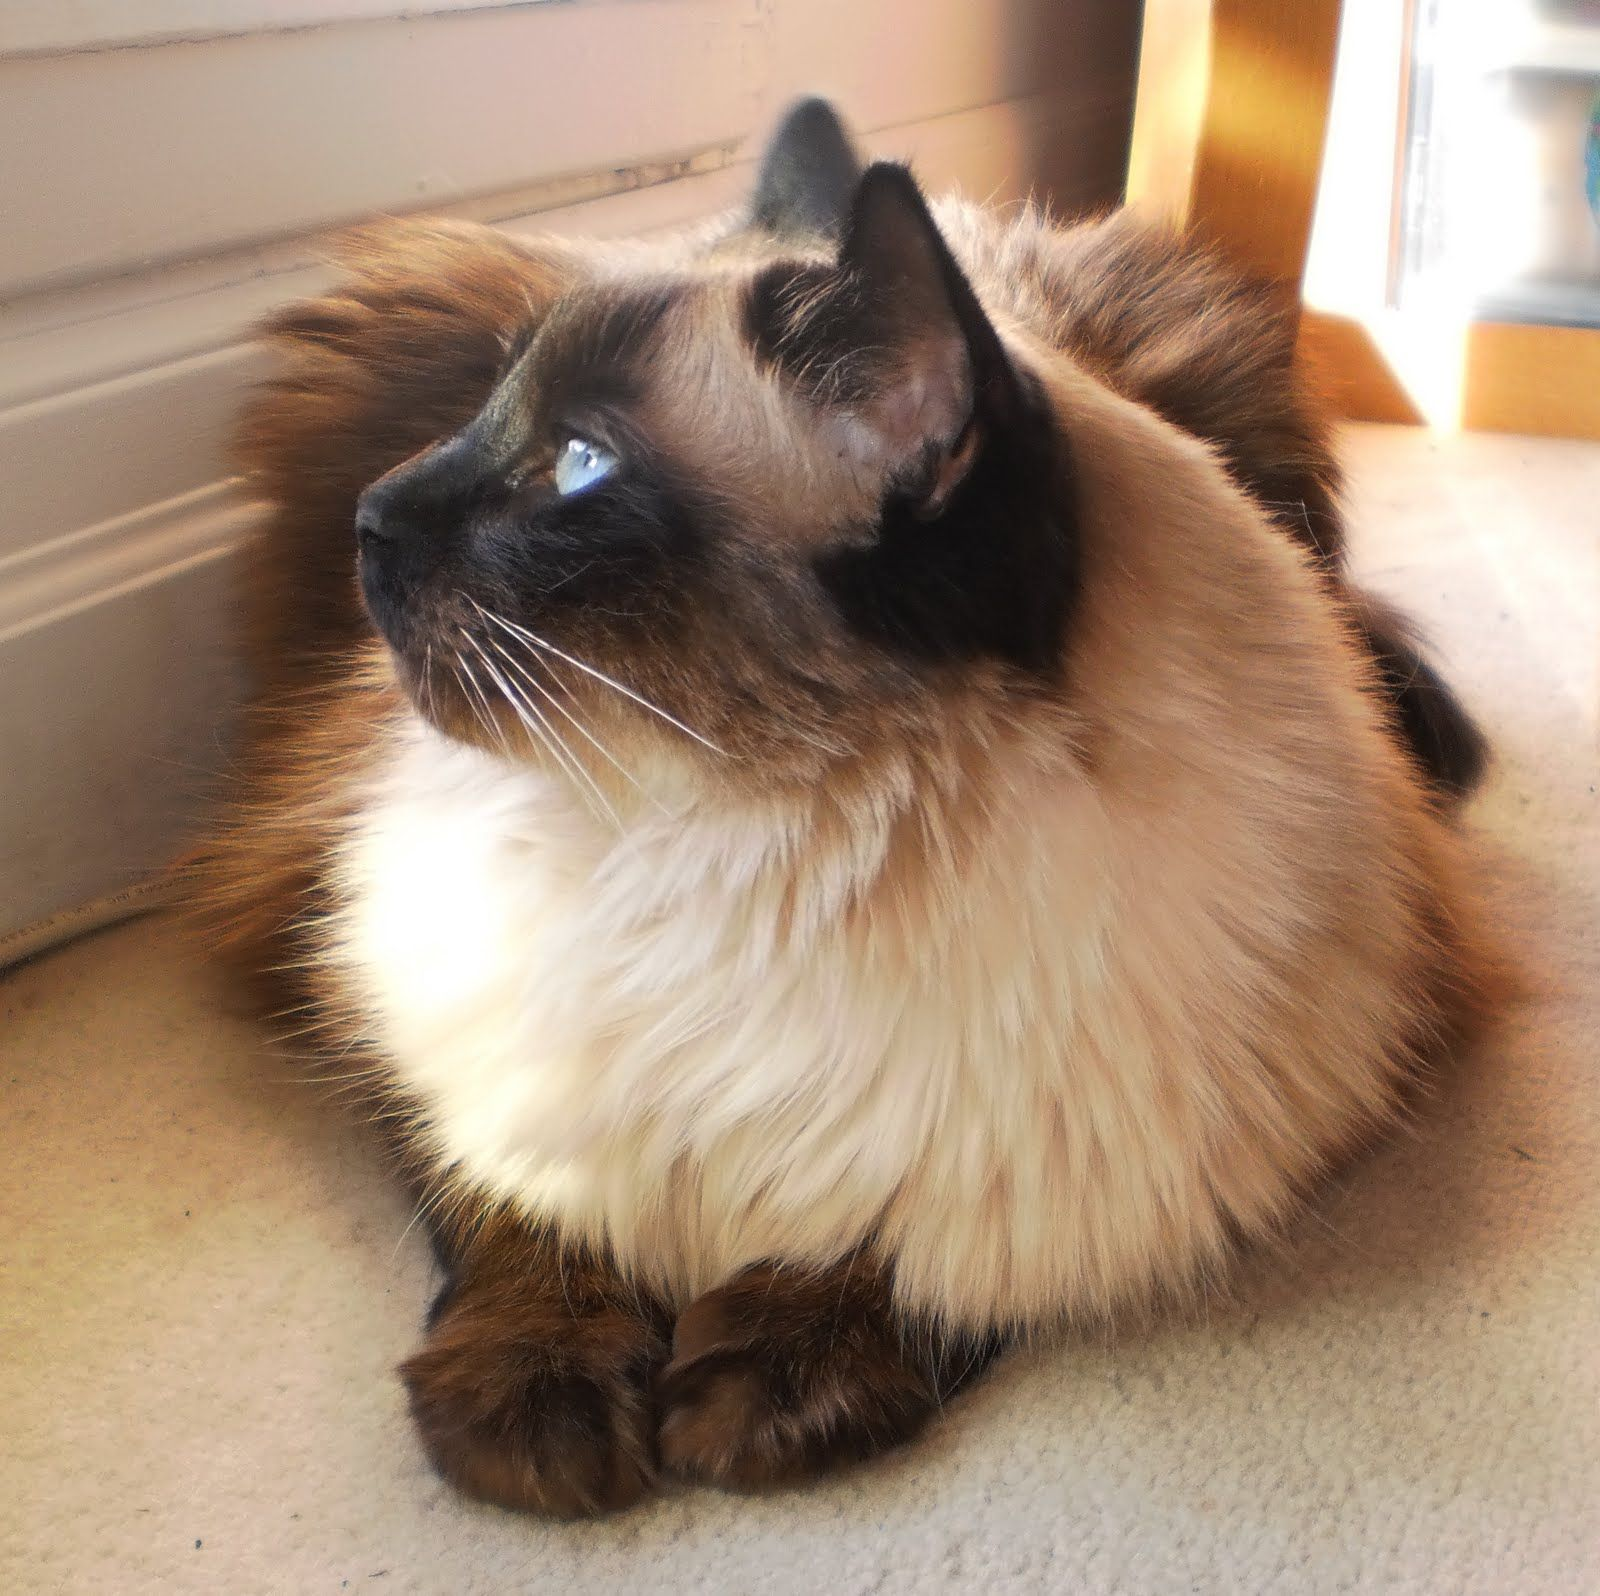 The Traditional Balinese Aka Applehead Balinese Cat Combines The Unique Personality And Intelligence And The Minimal Shedd Balinese Cat Cat Breeds Cute Cats